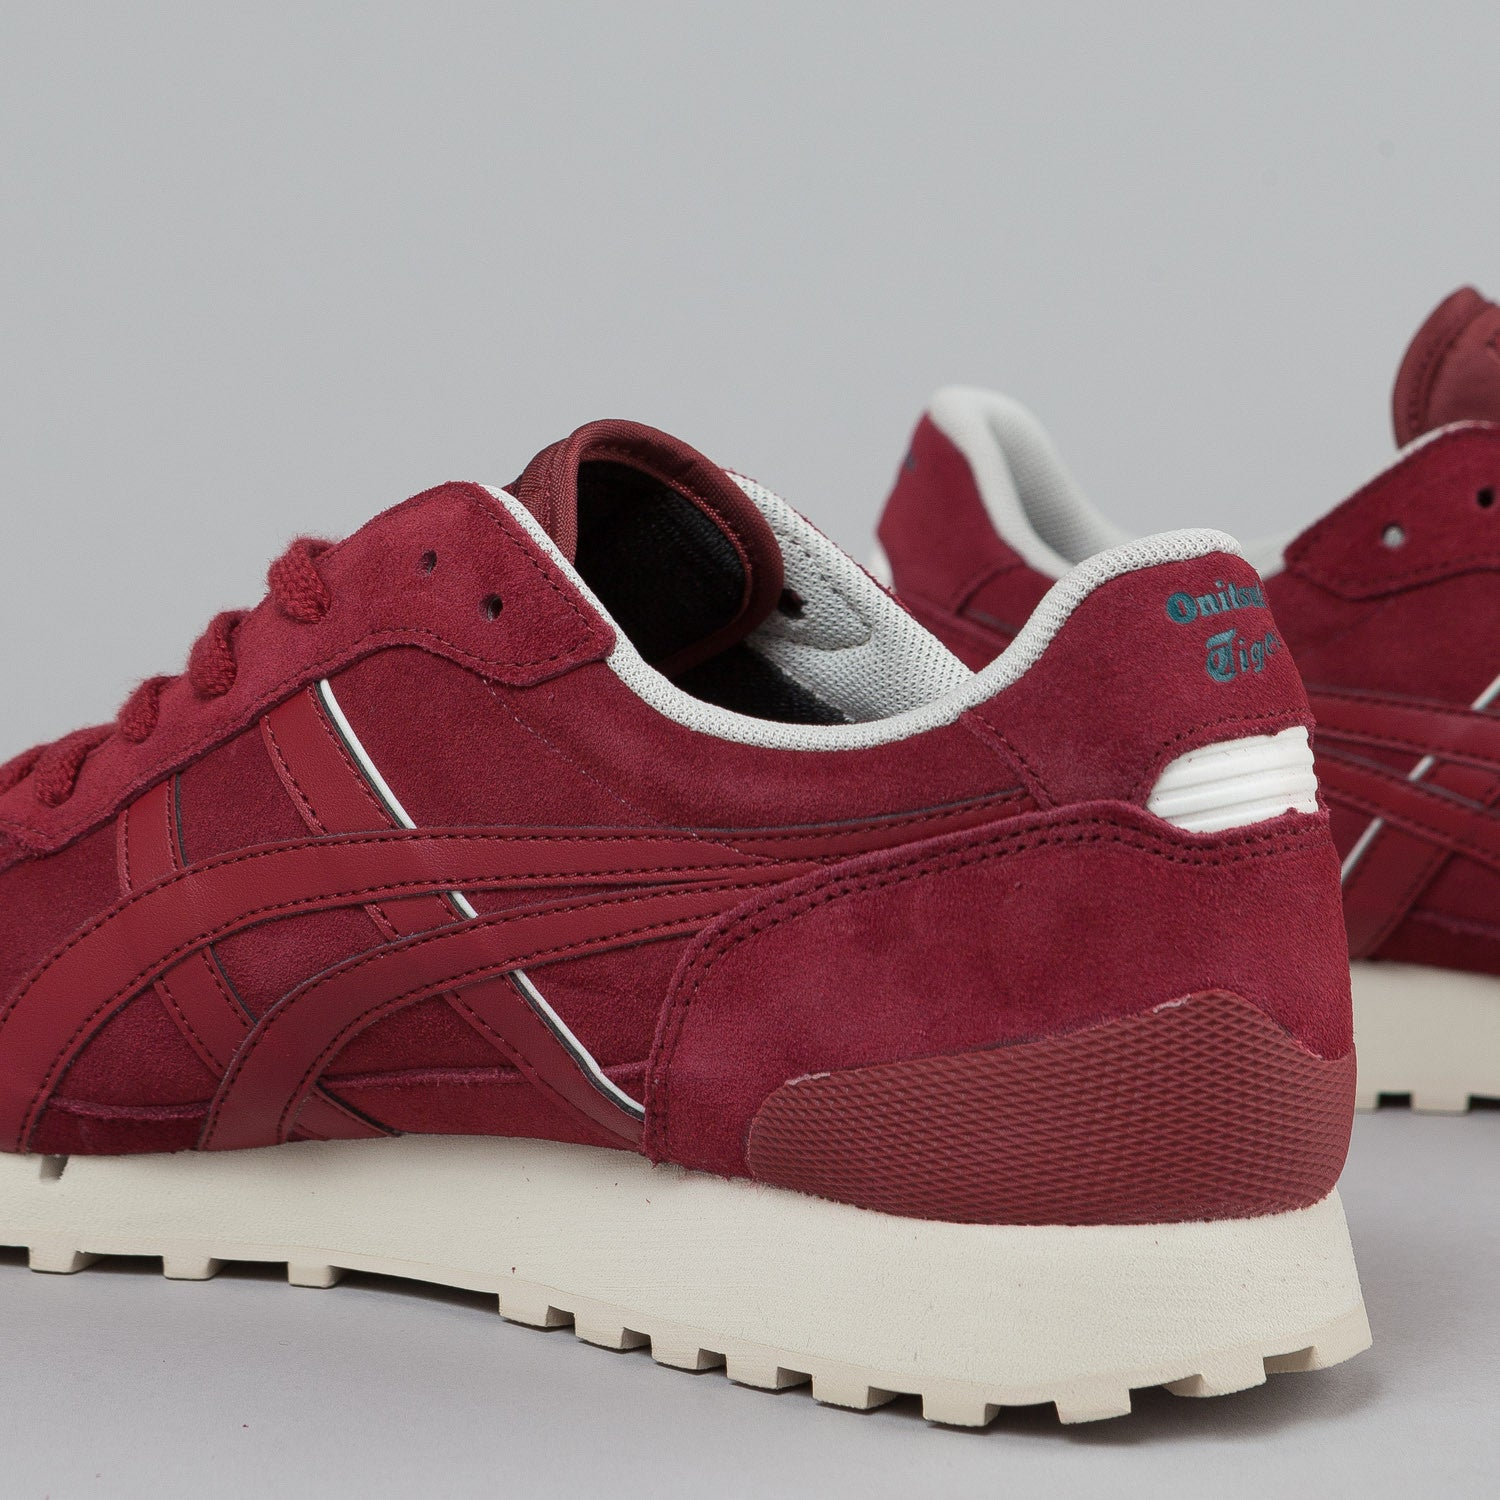 Onitsuka Tiger Colorado 85 Burgundy / Burgundy